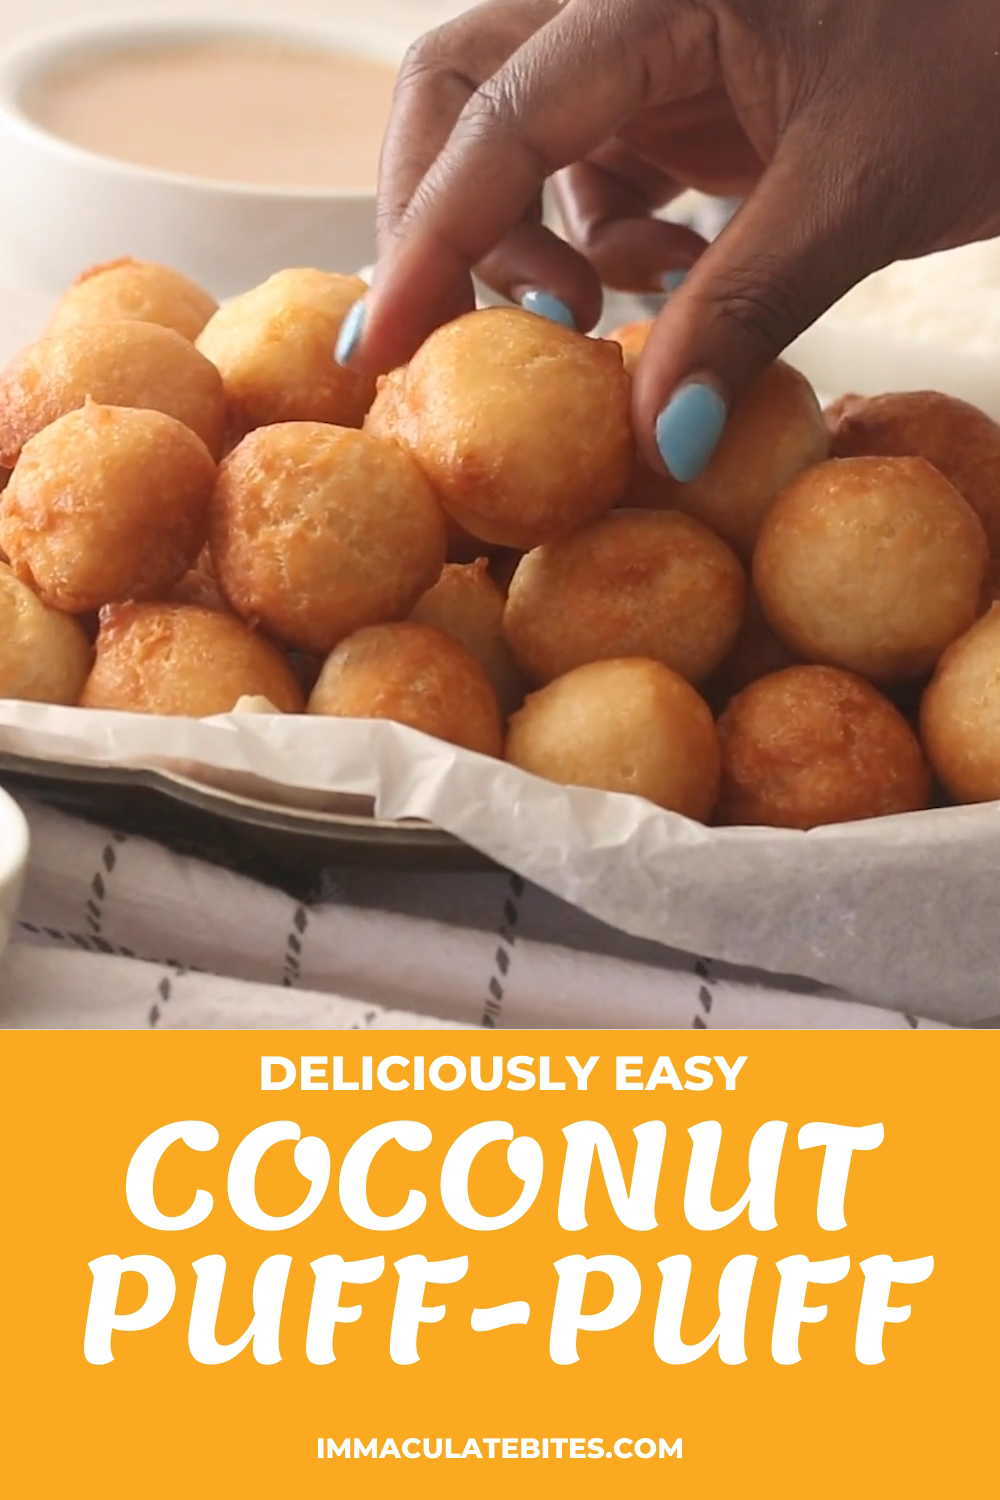 Coconut Puff-Puff (Deep-Fried Coconut Dough)